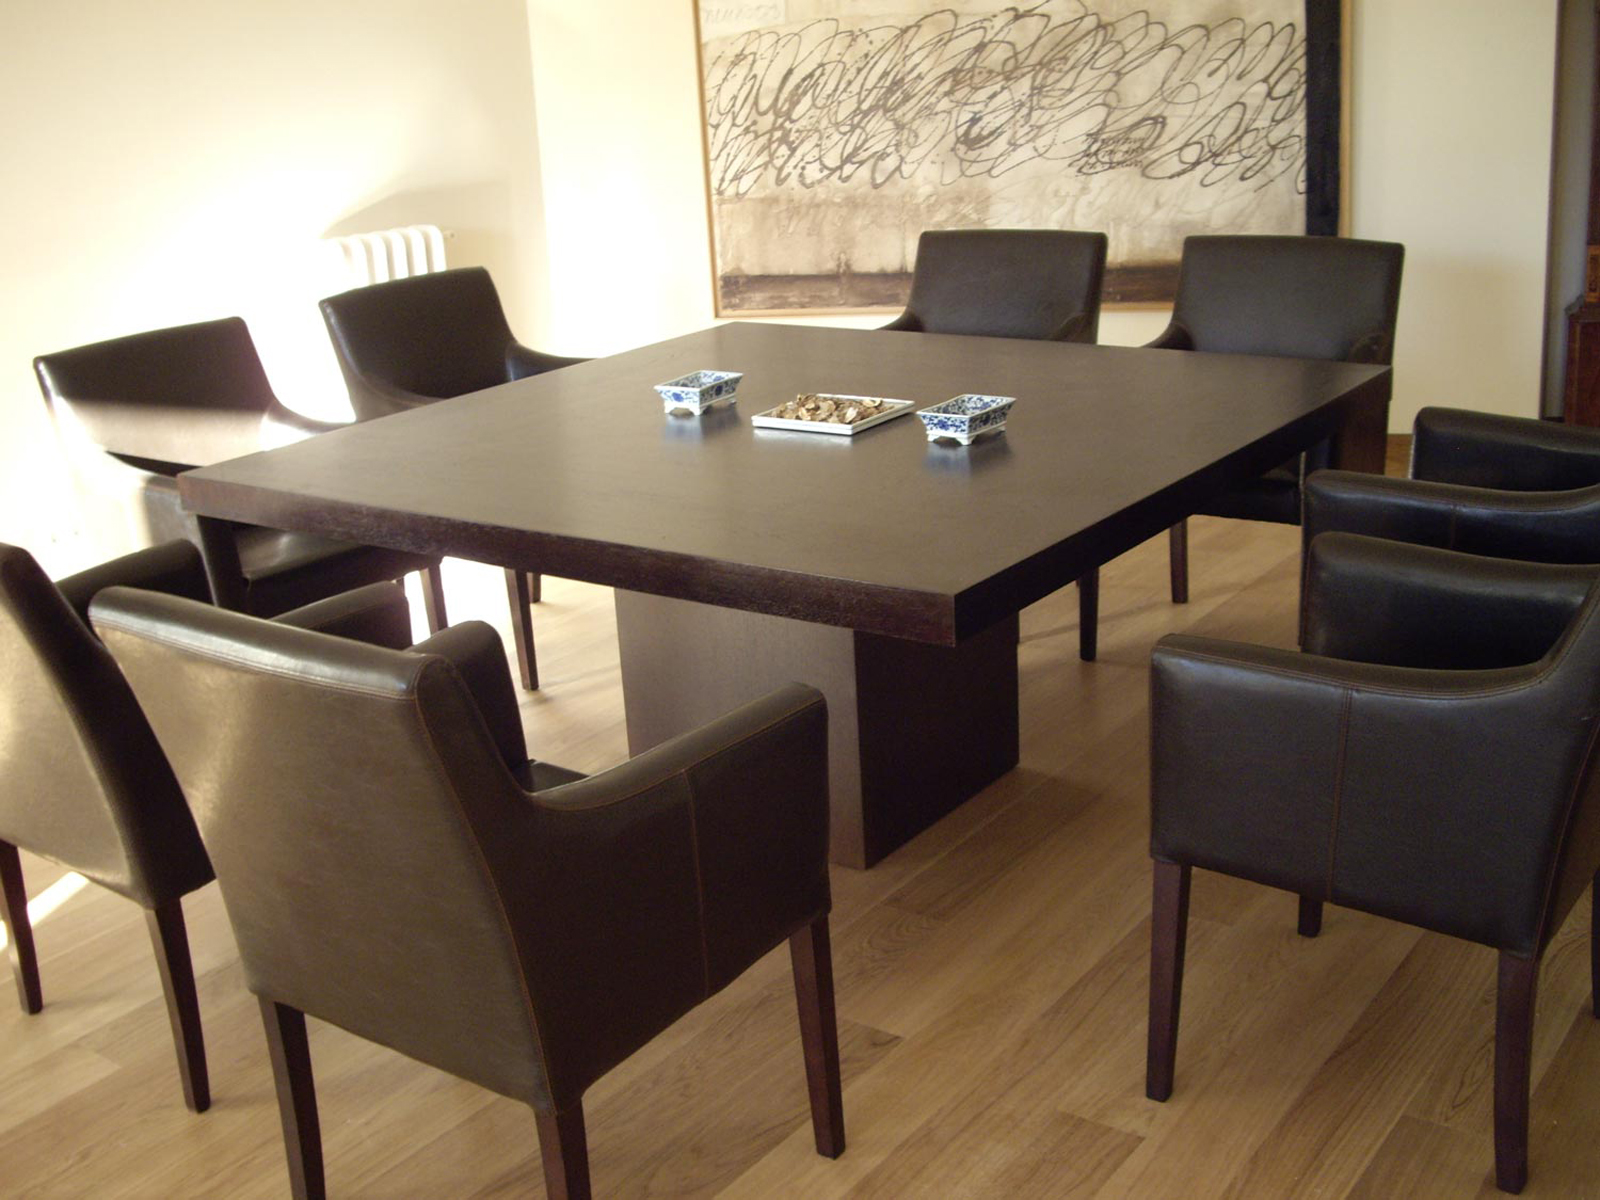 Image of: upholstered dining chair gallery